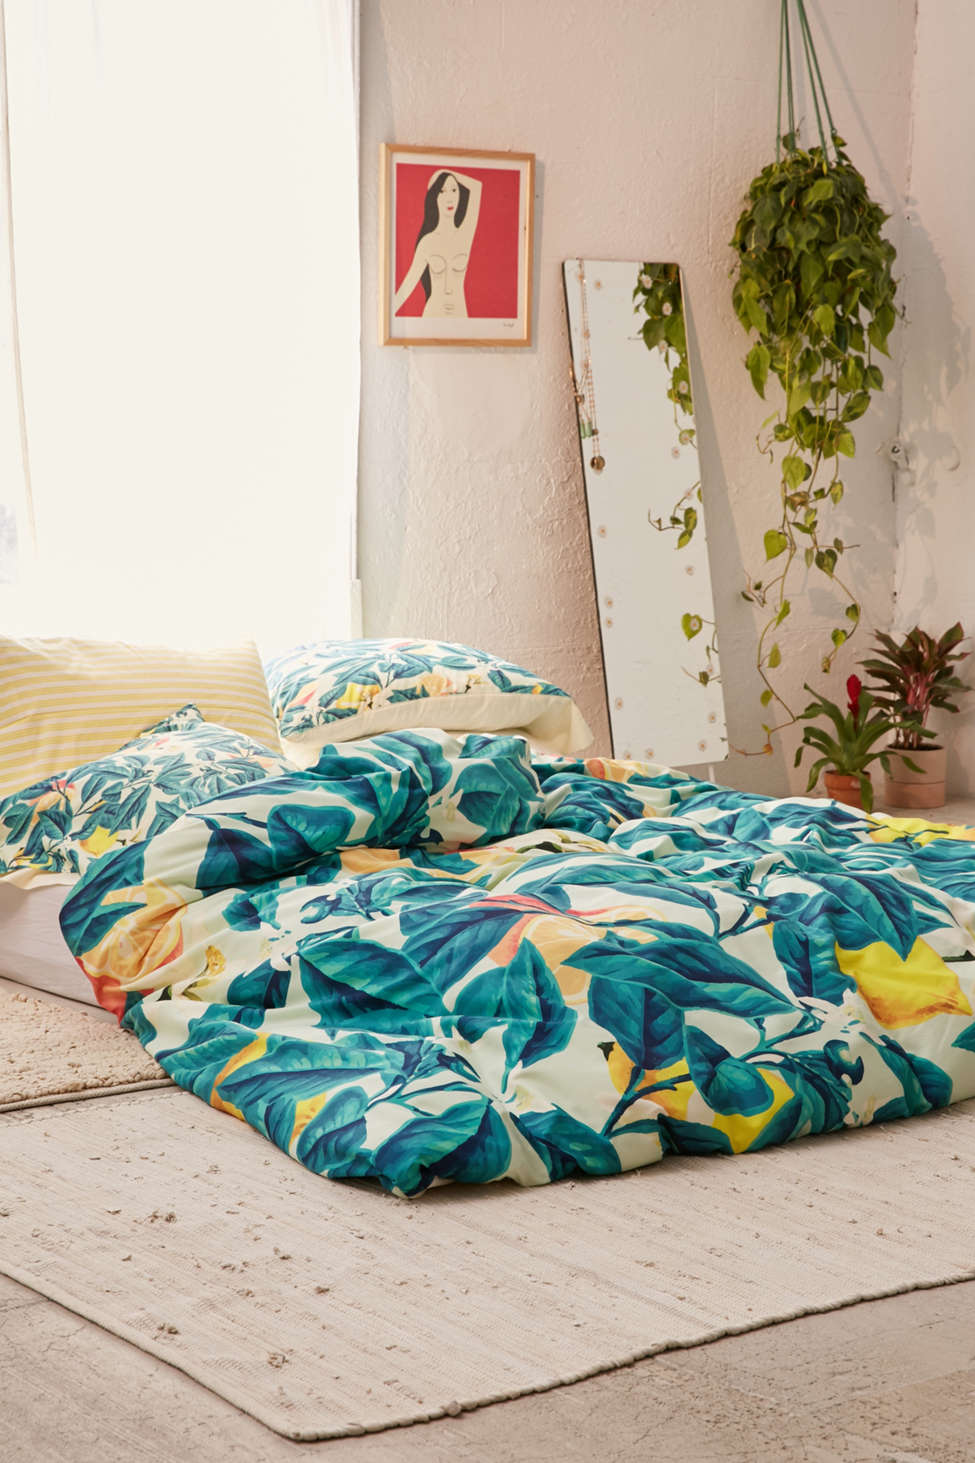 Slide View: 2: 83 Oranges For Deny Lemon Pattern Duvet Cover